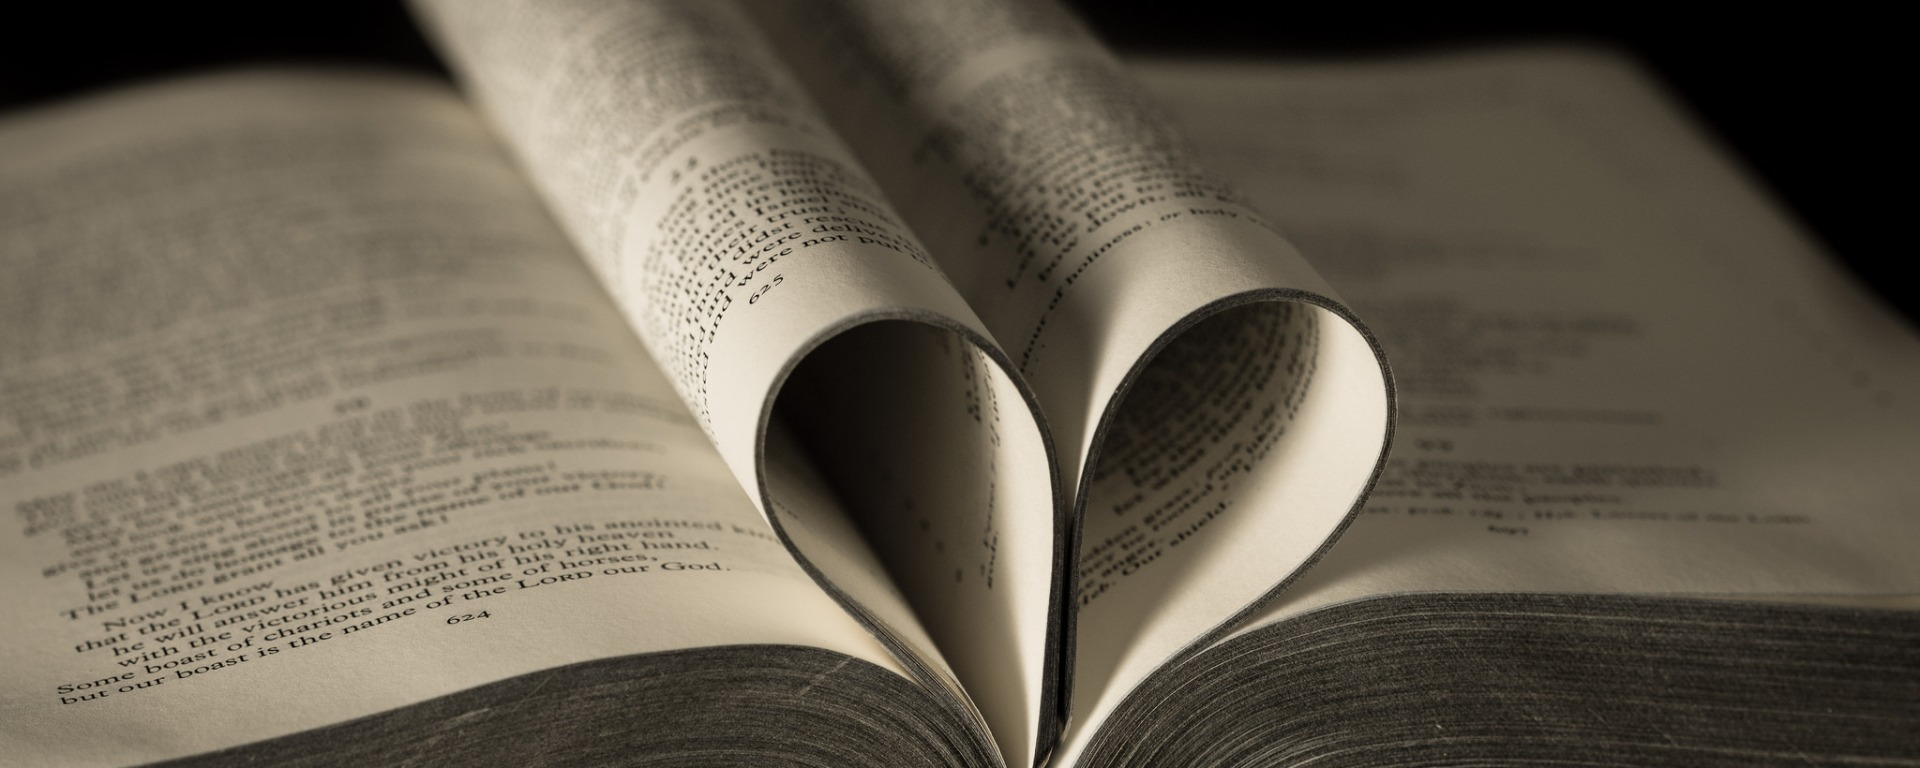 Photo of Bible by Barney Moss.